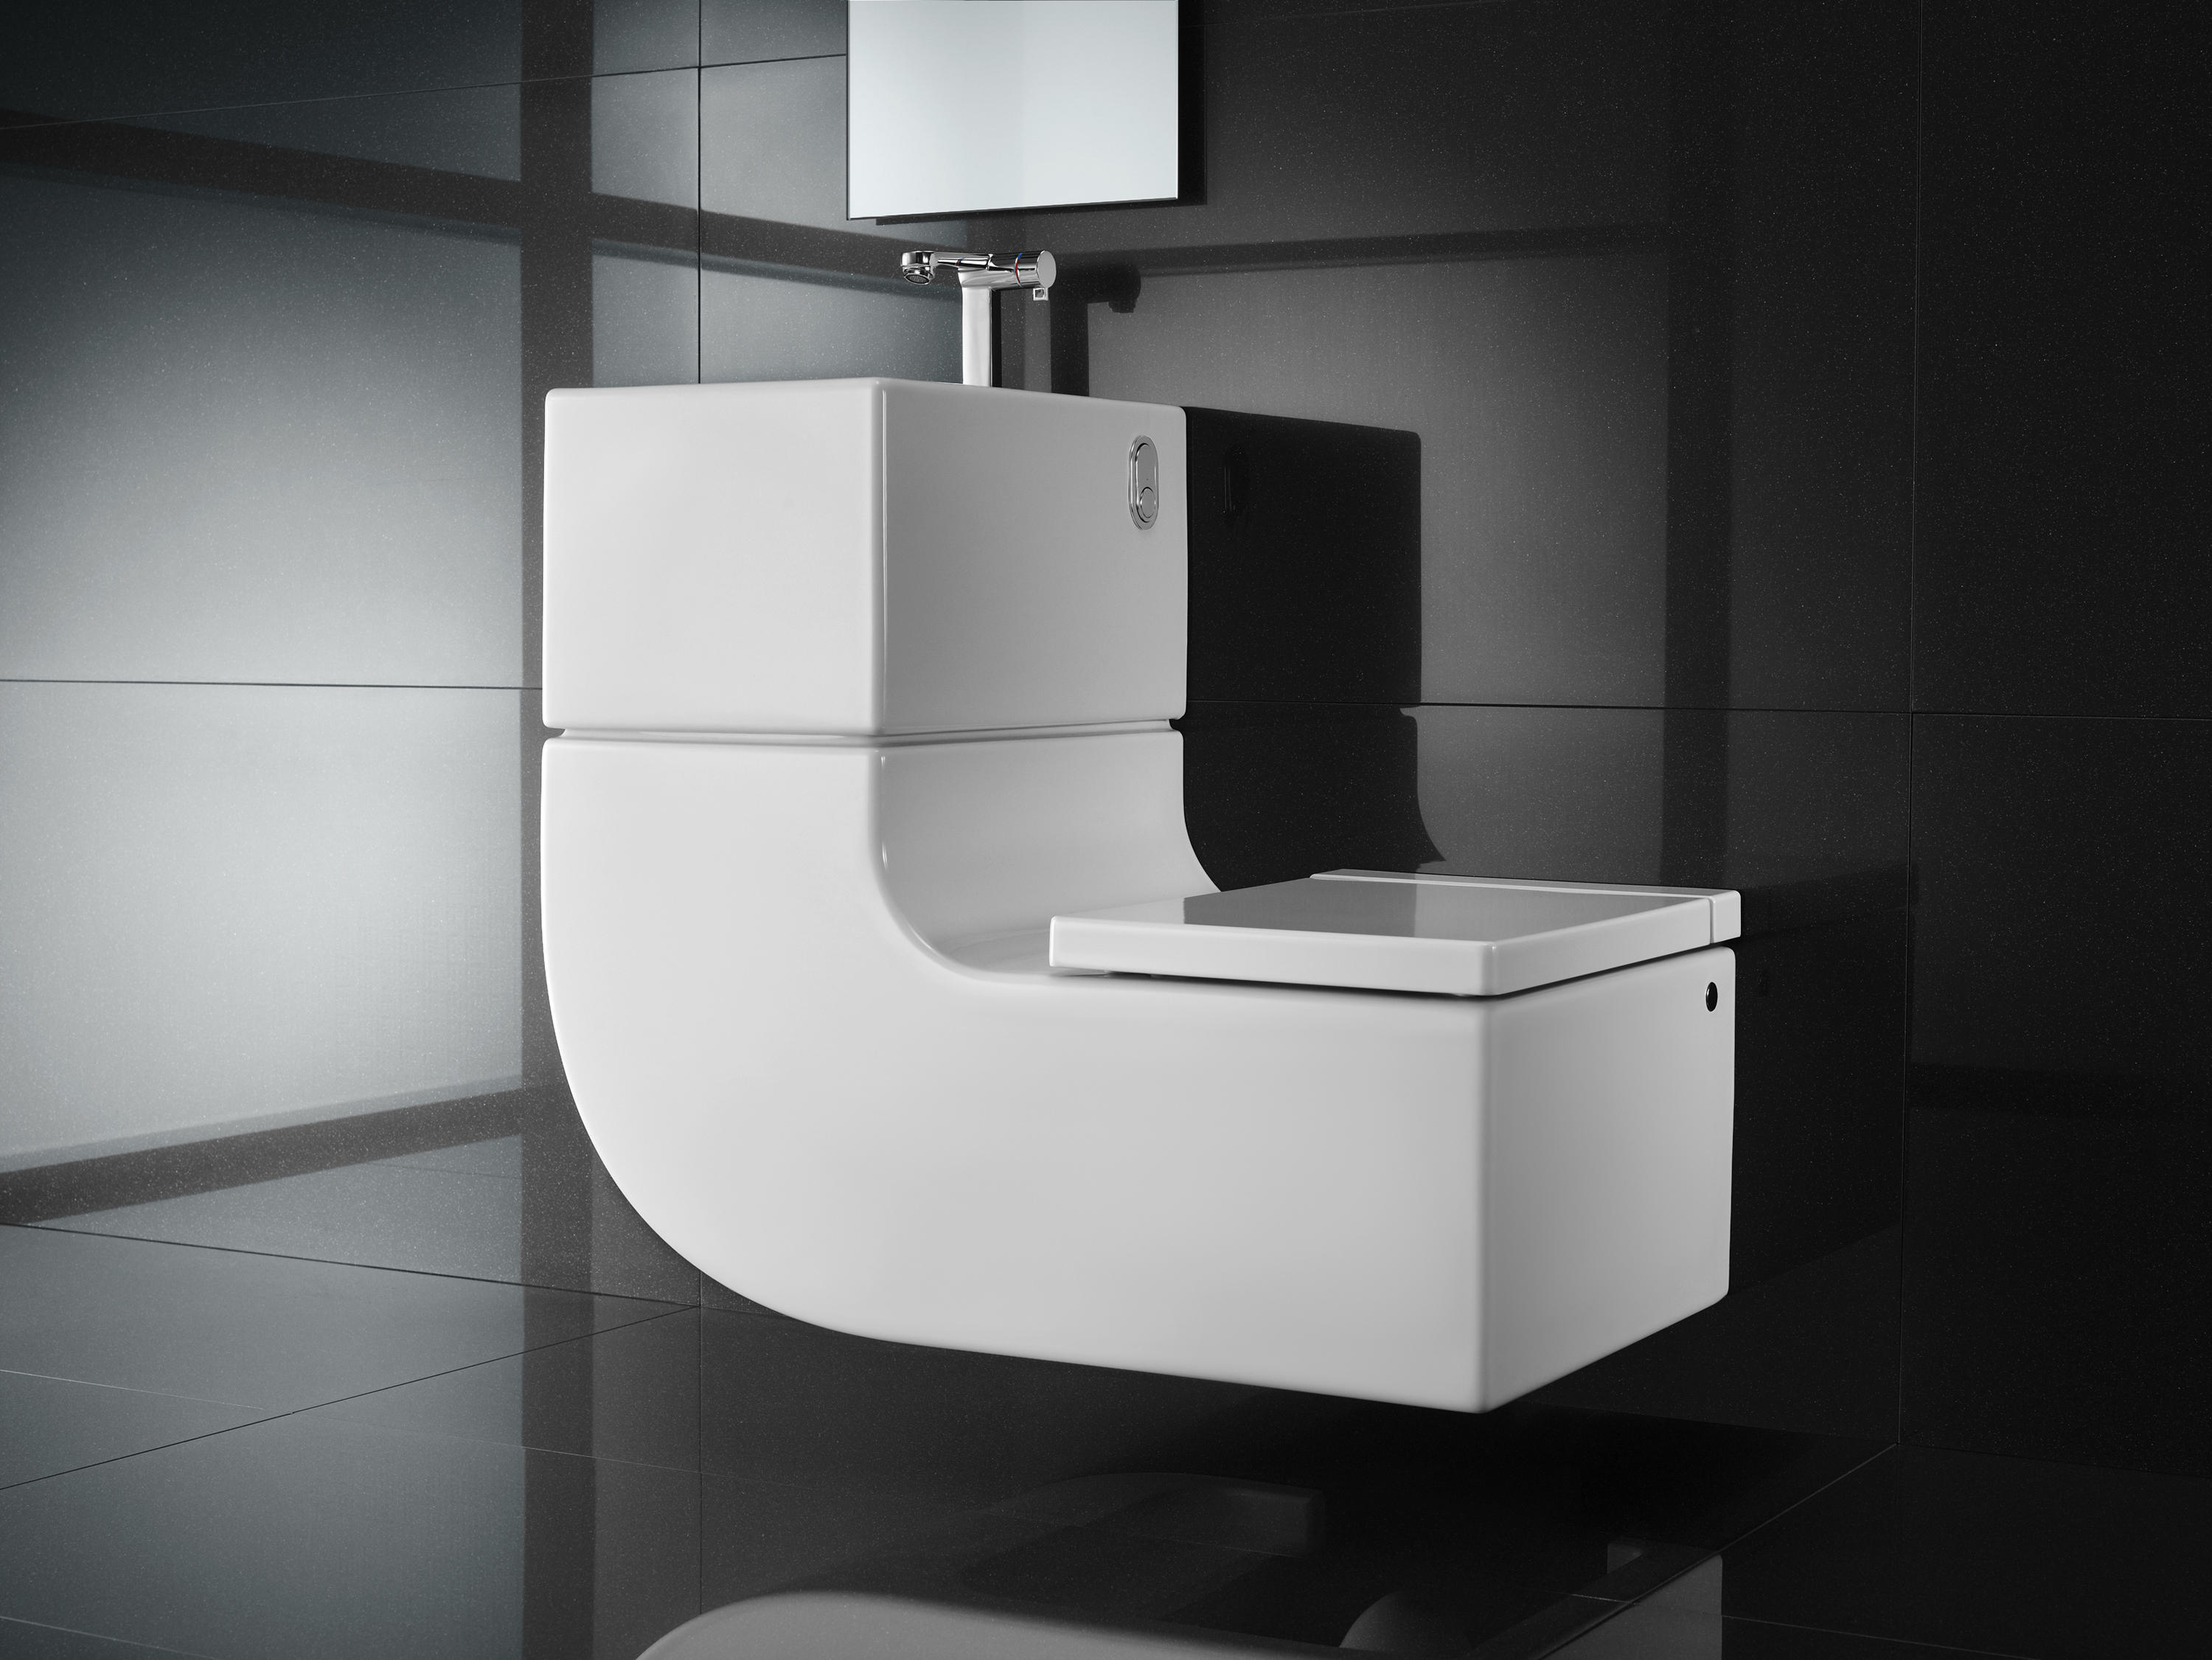 w w washbasin wc toilets from roca architonic